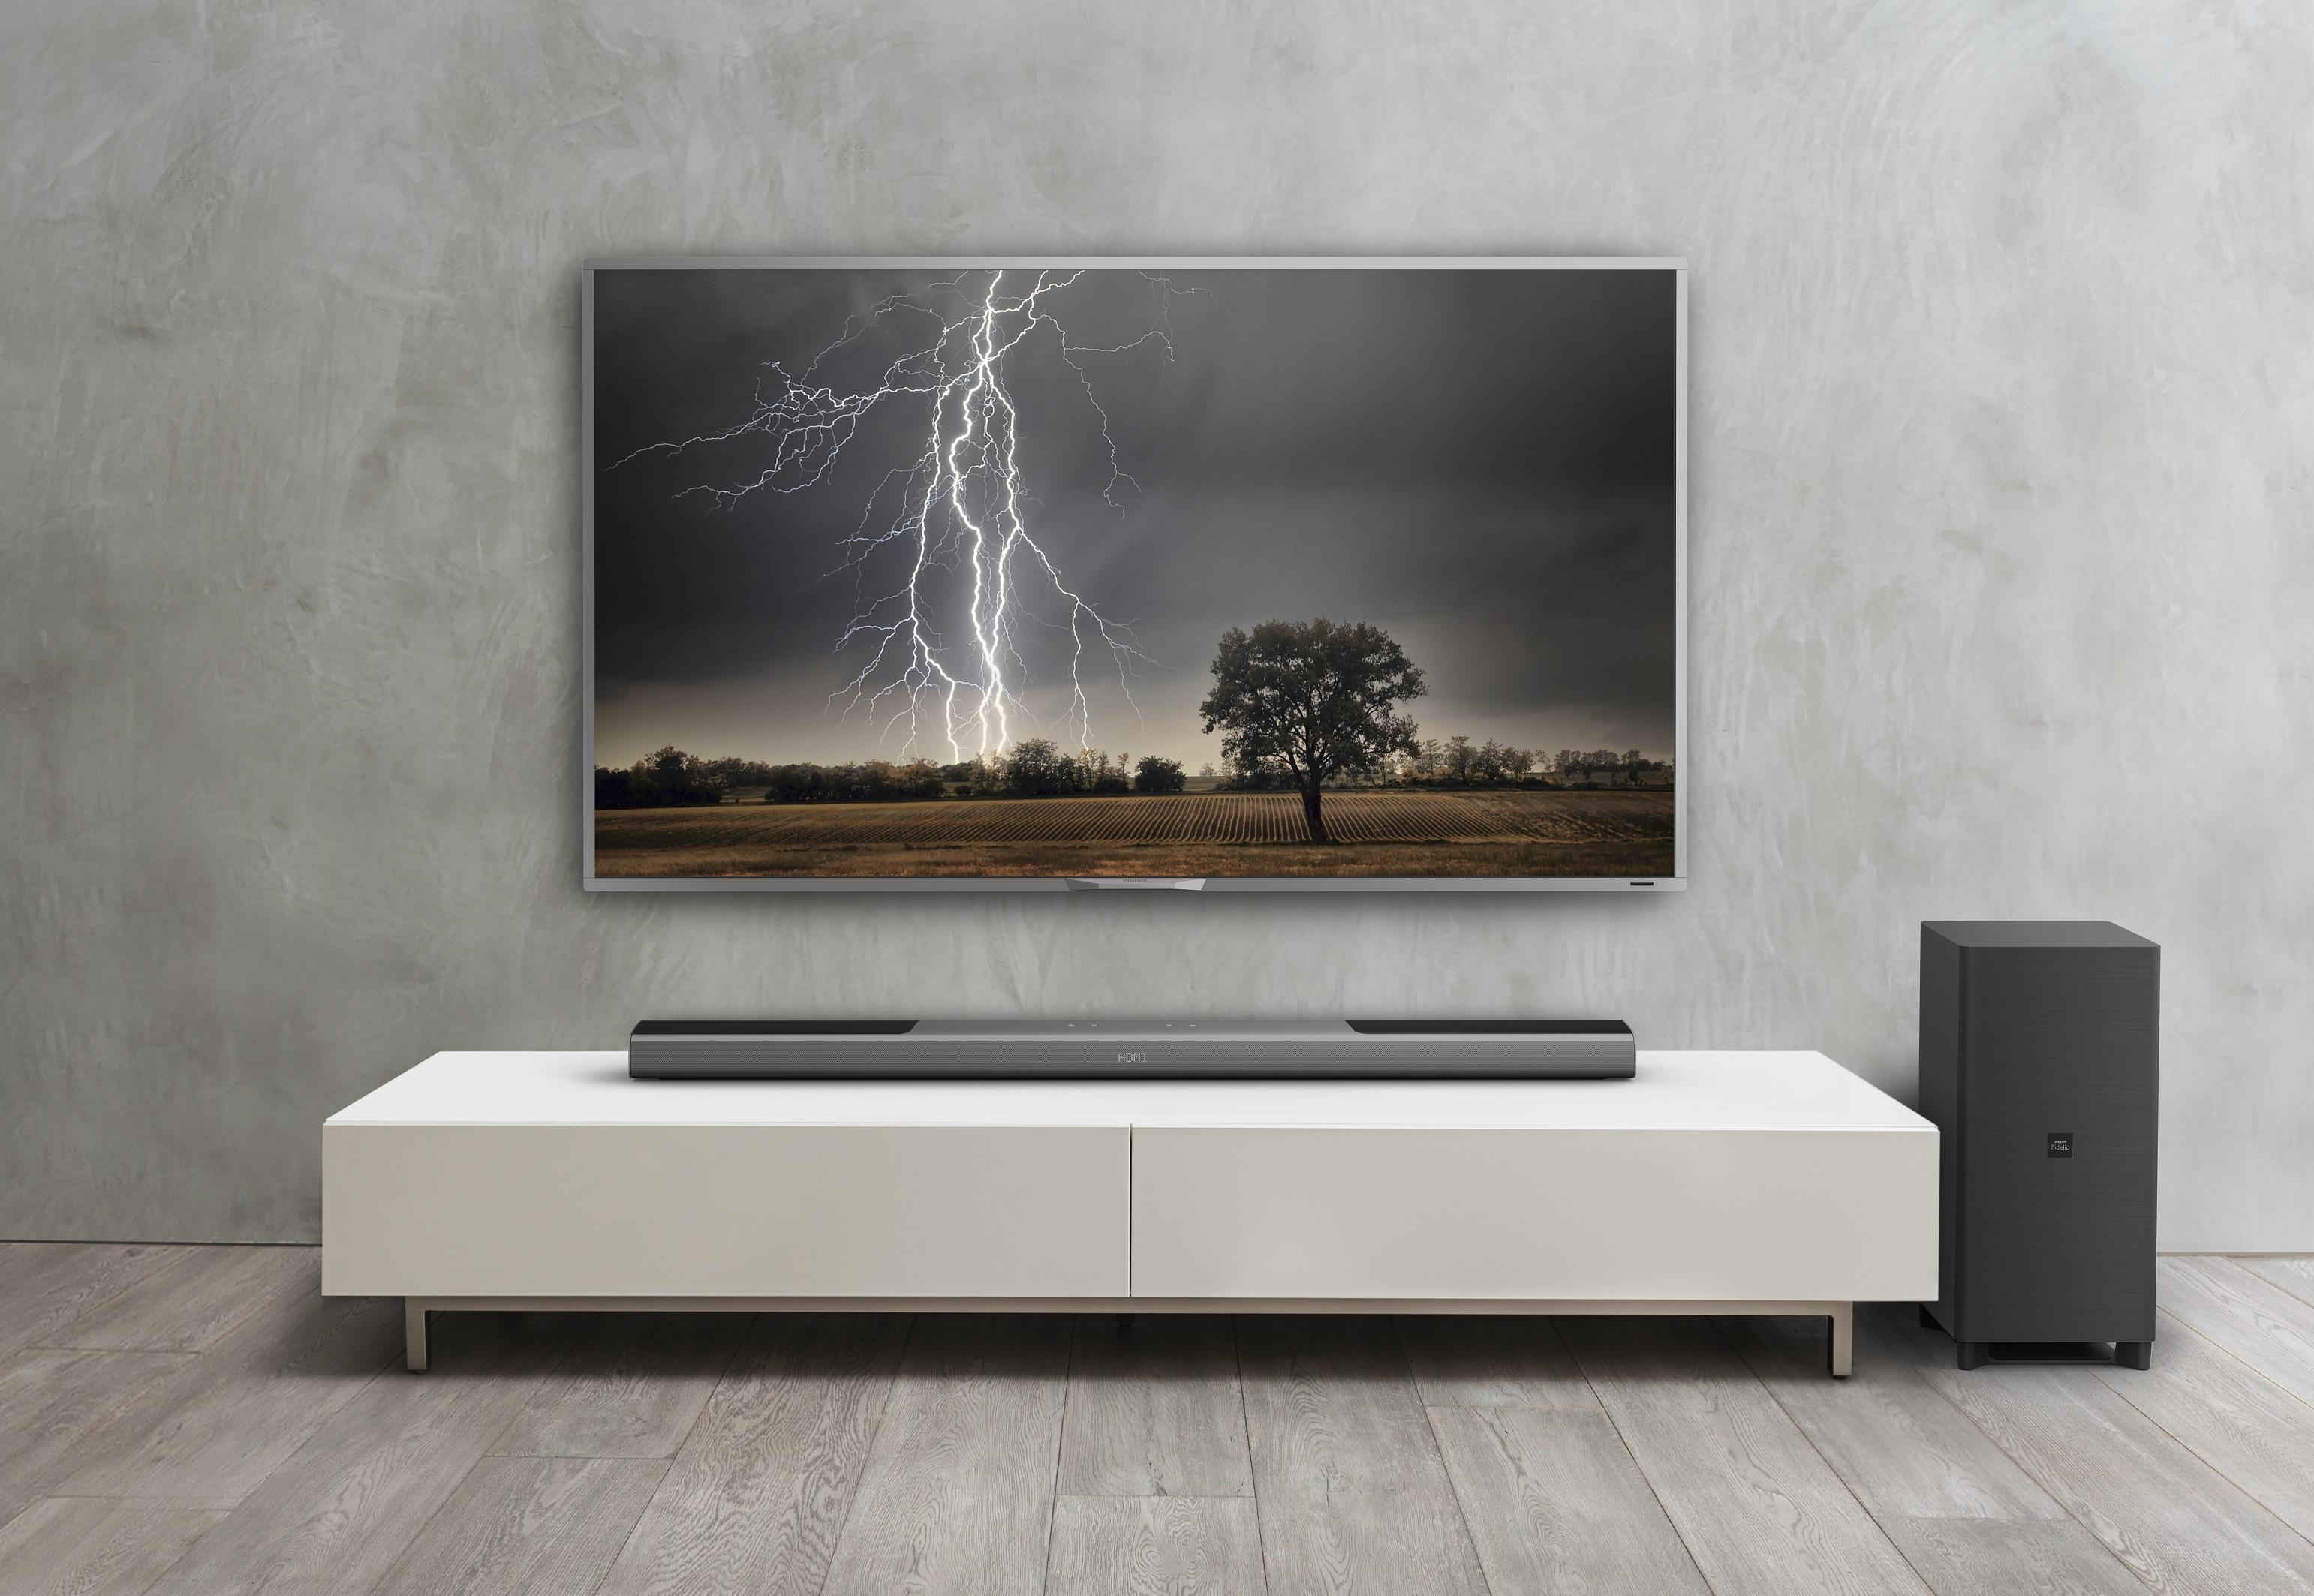 3._Philips_Fidelio_Soundbar_with_Dolby_Atmos_image3_1